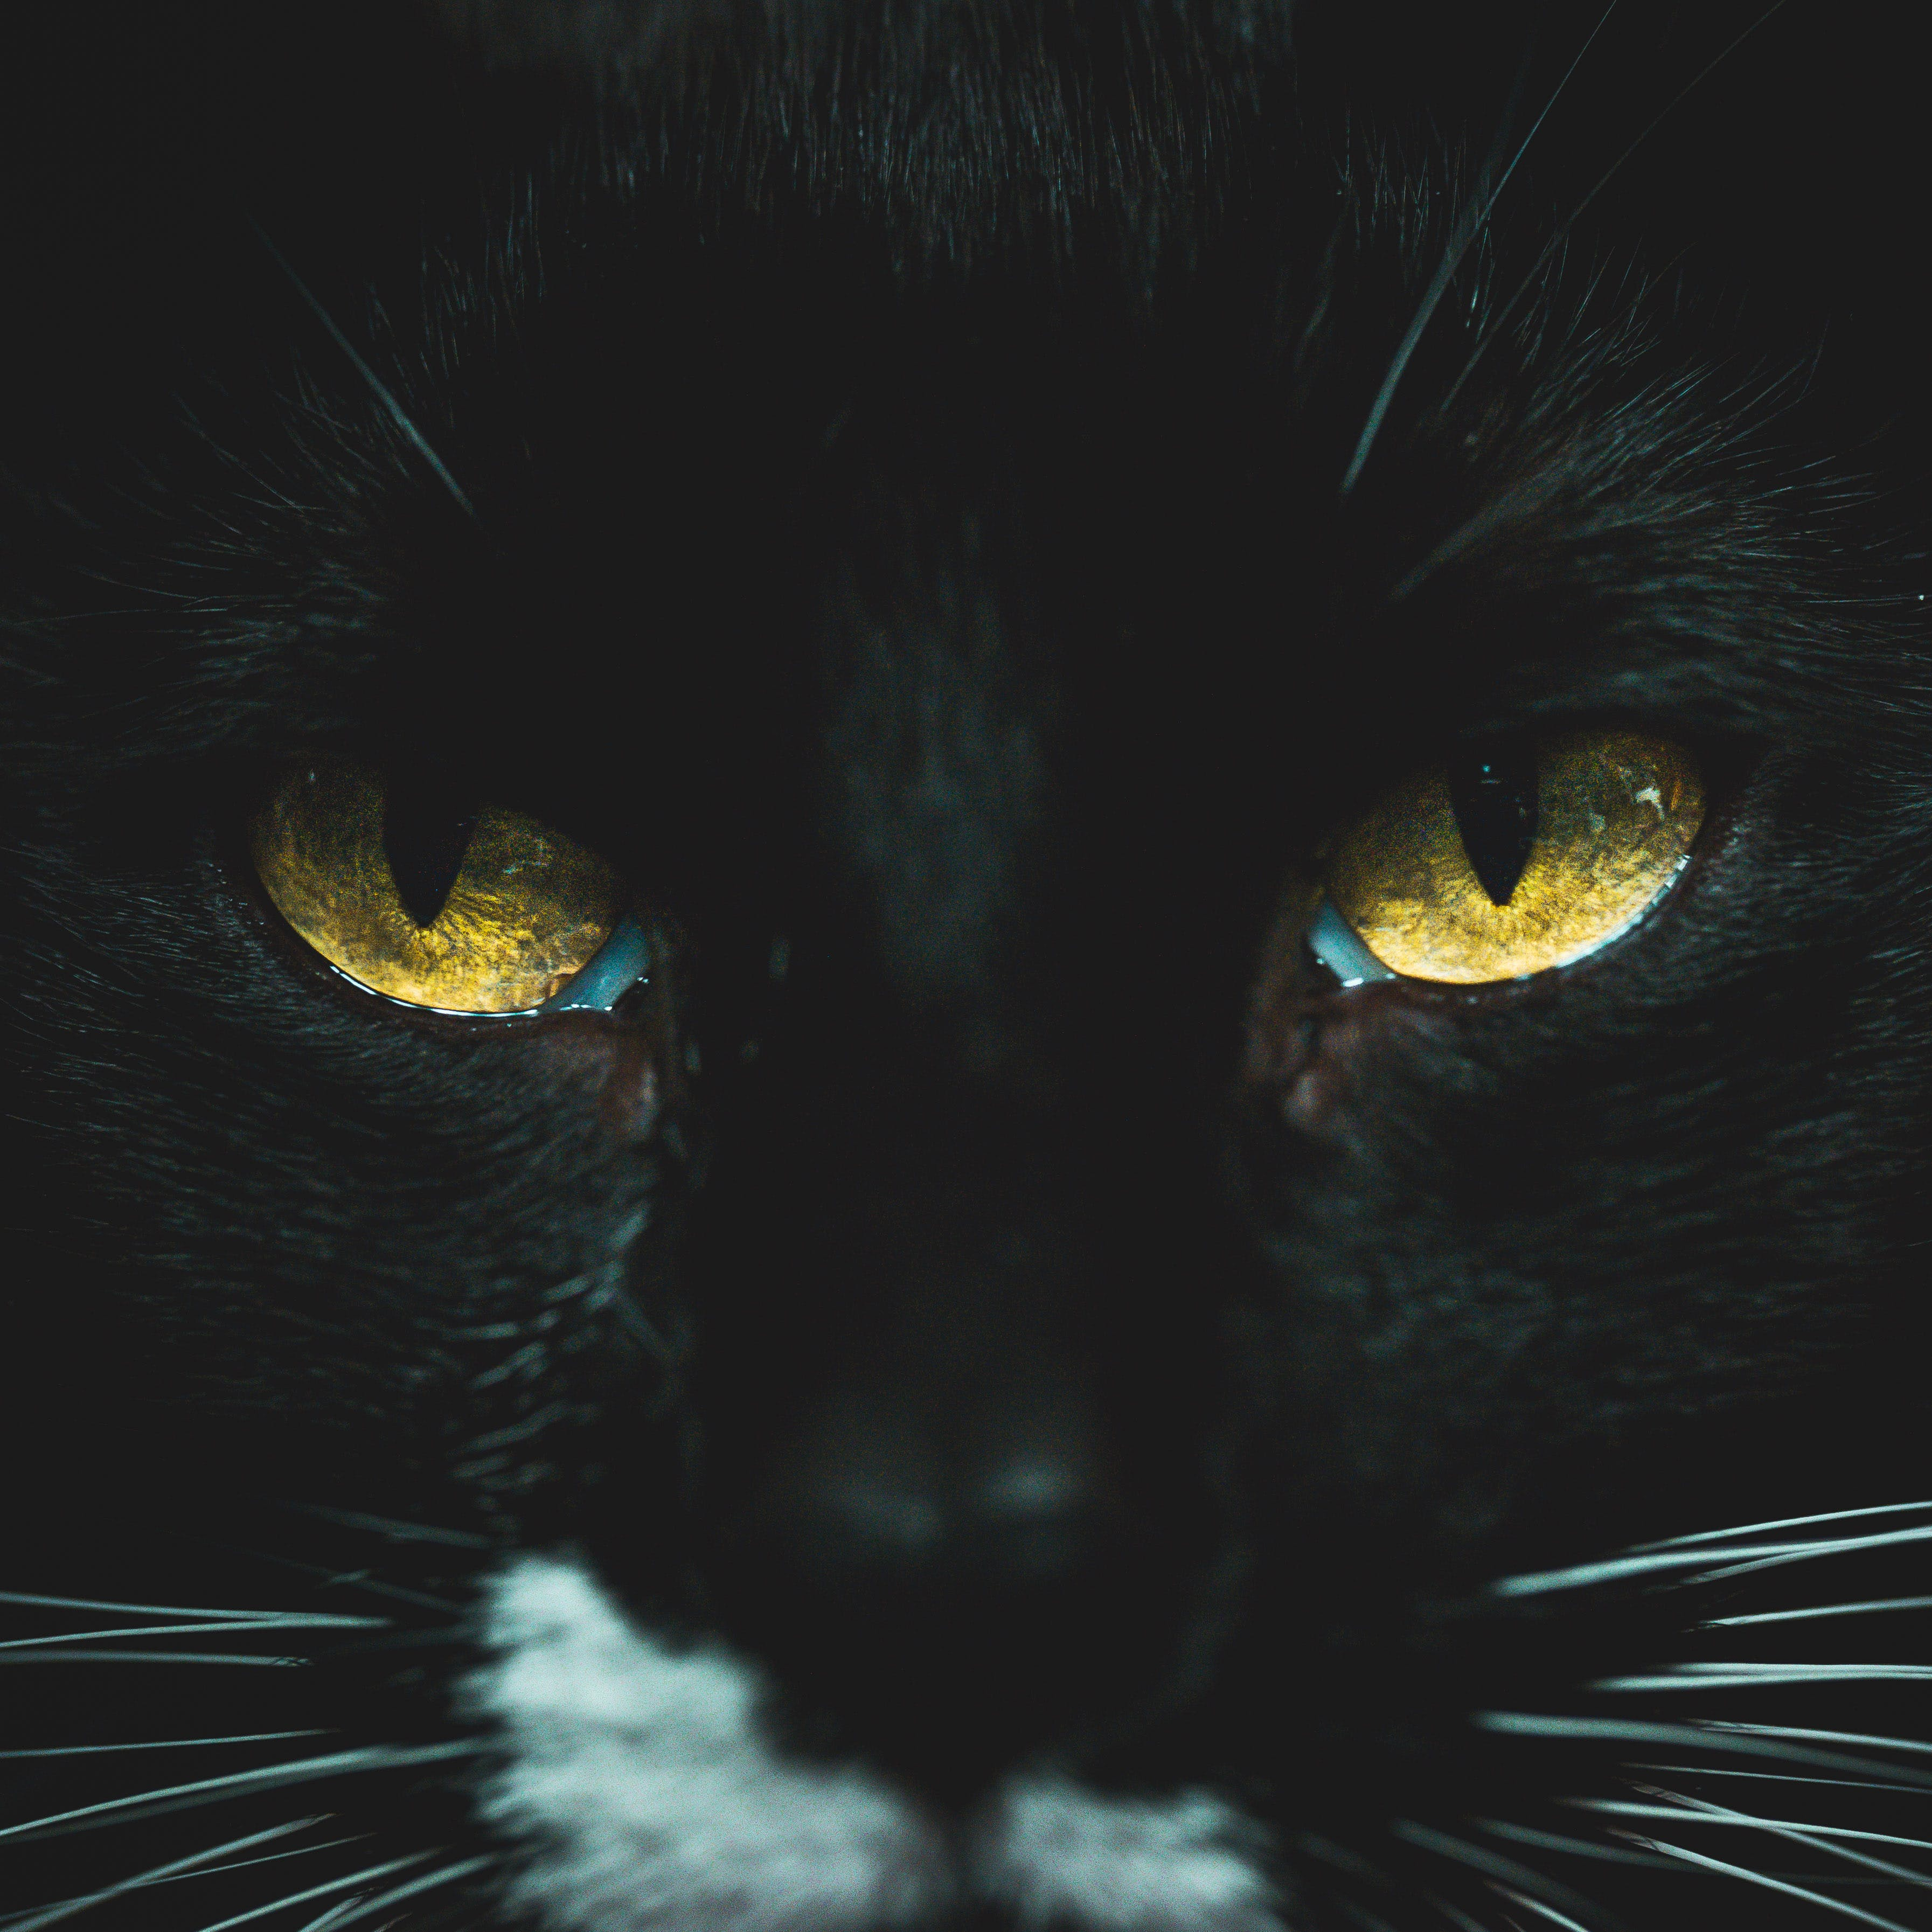 Close-Up Photo Of Black Cat